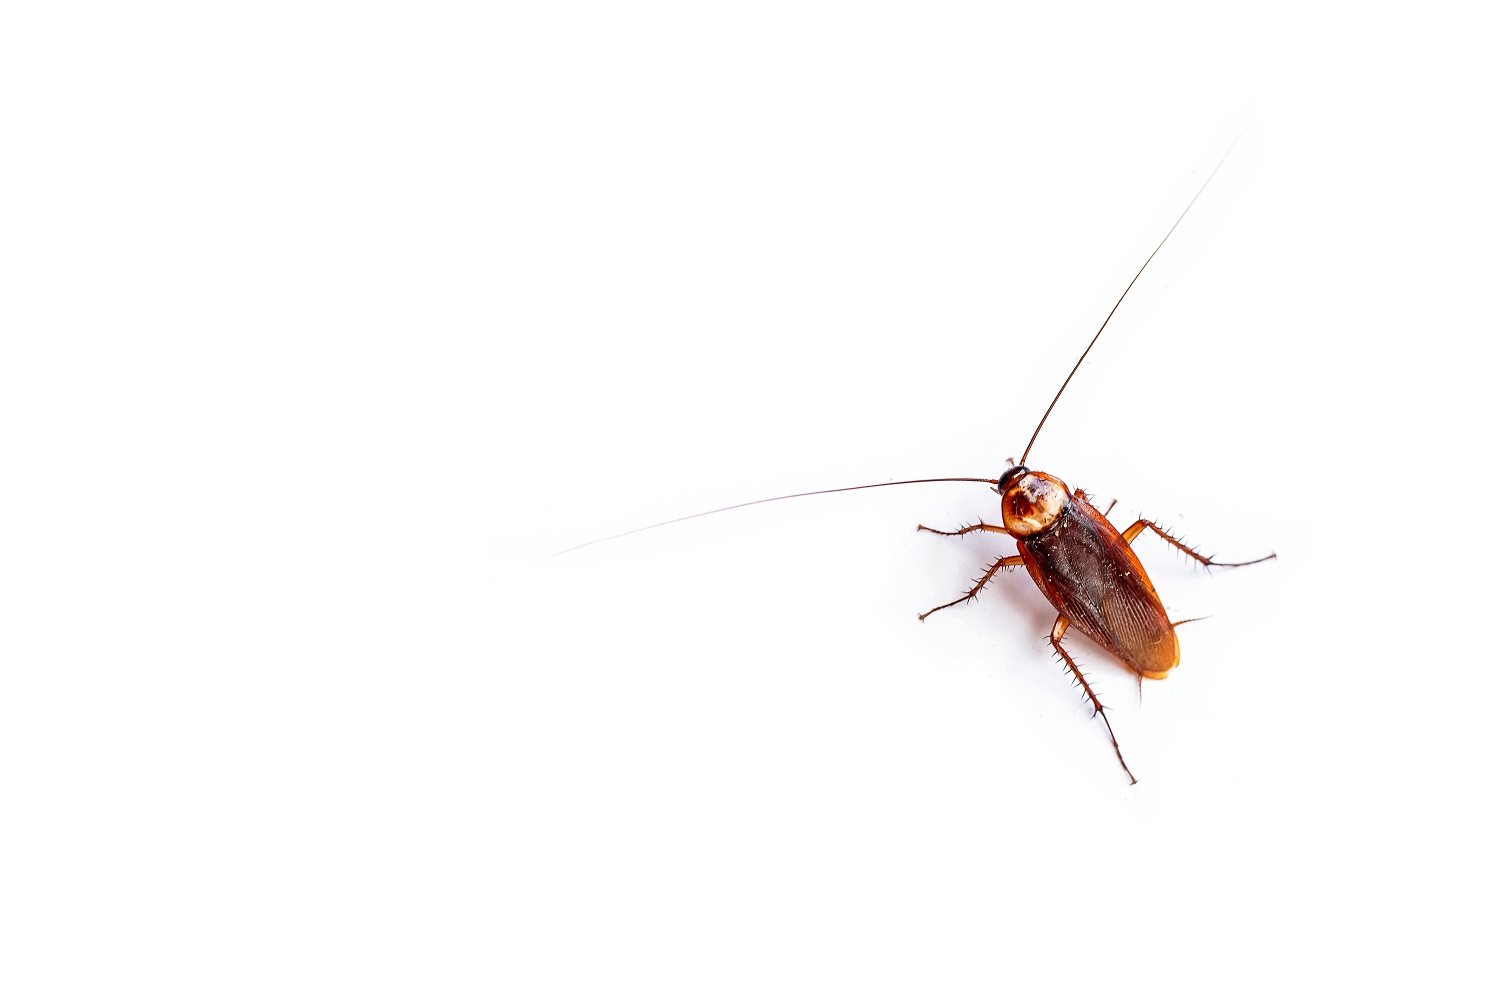 The top view cockroach thailand isolated on white background, copy space.